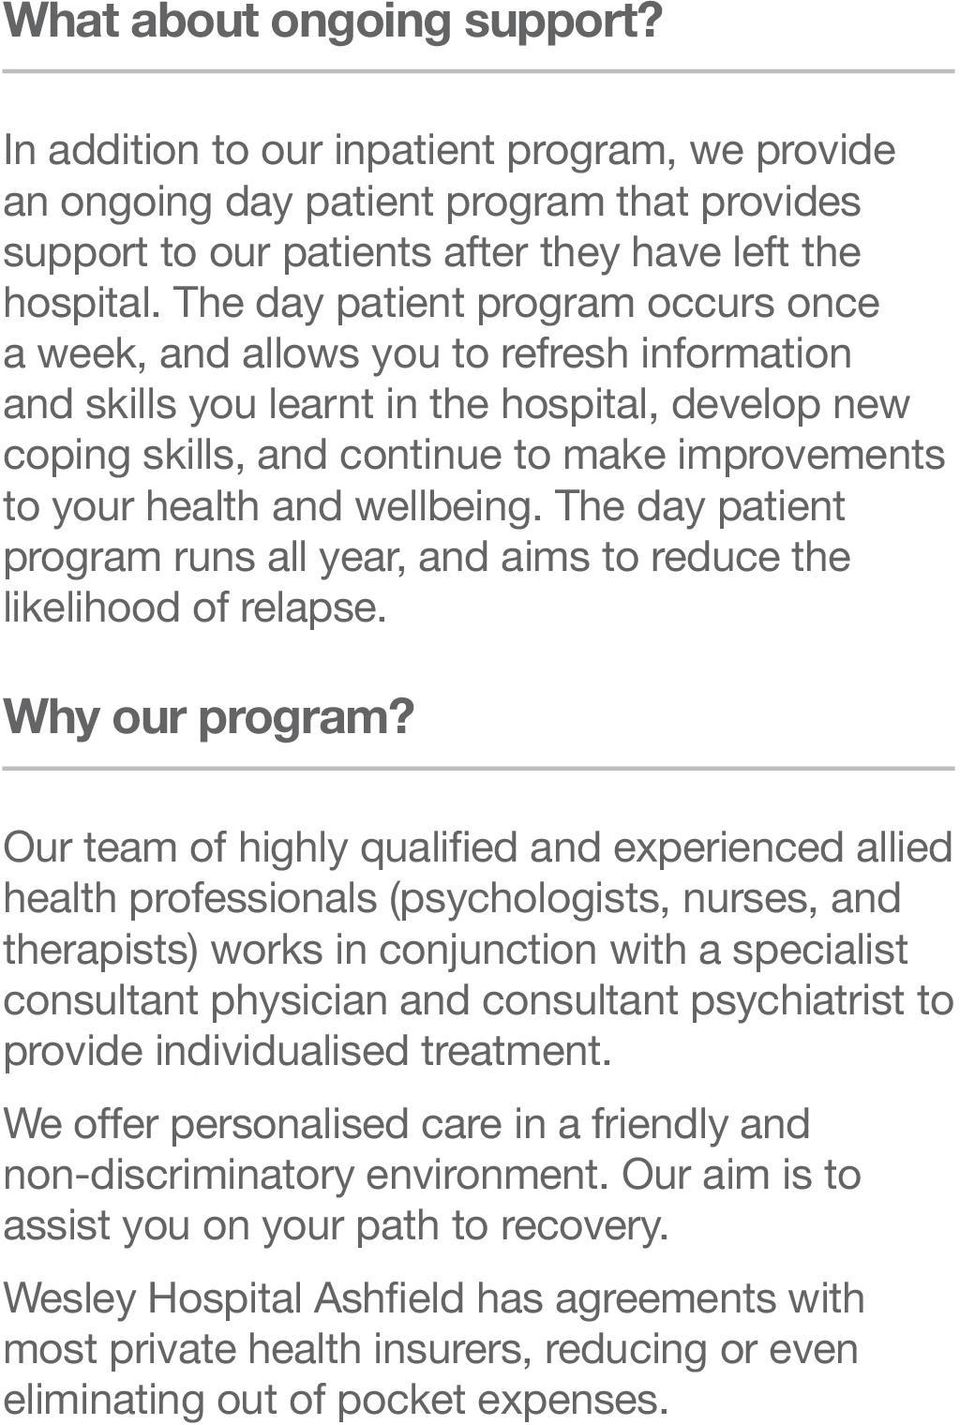 and wellbeing. The day patient program runs all year, and aims to reduce the likelihood of relapse. Why our program?